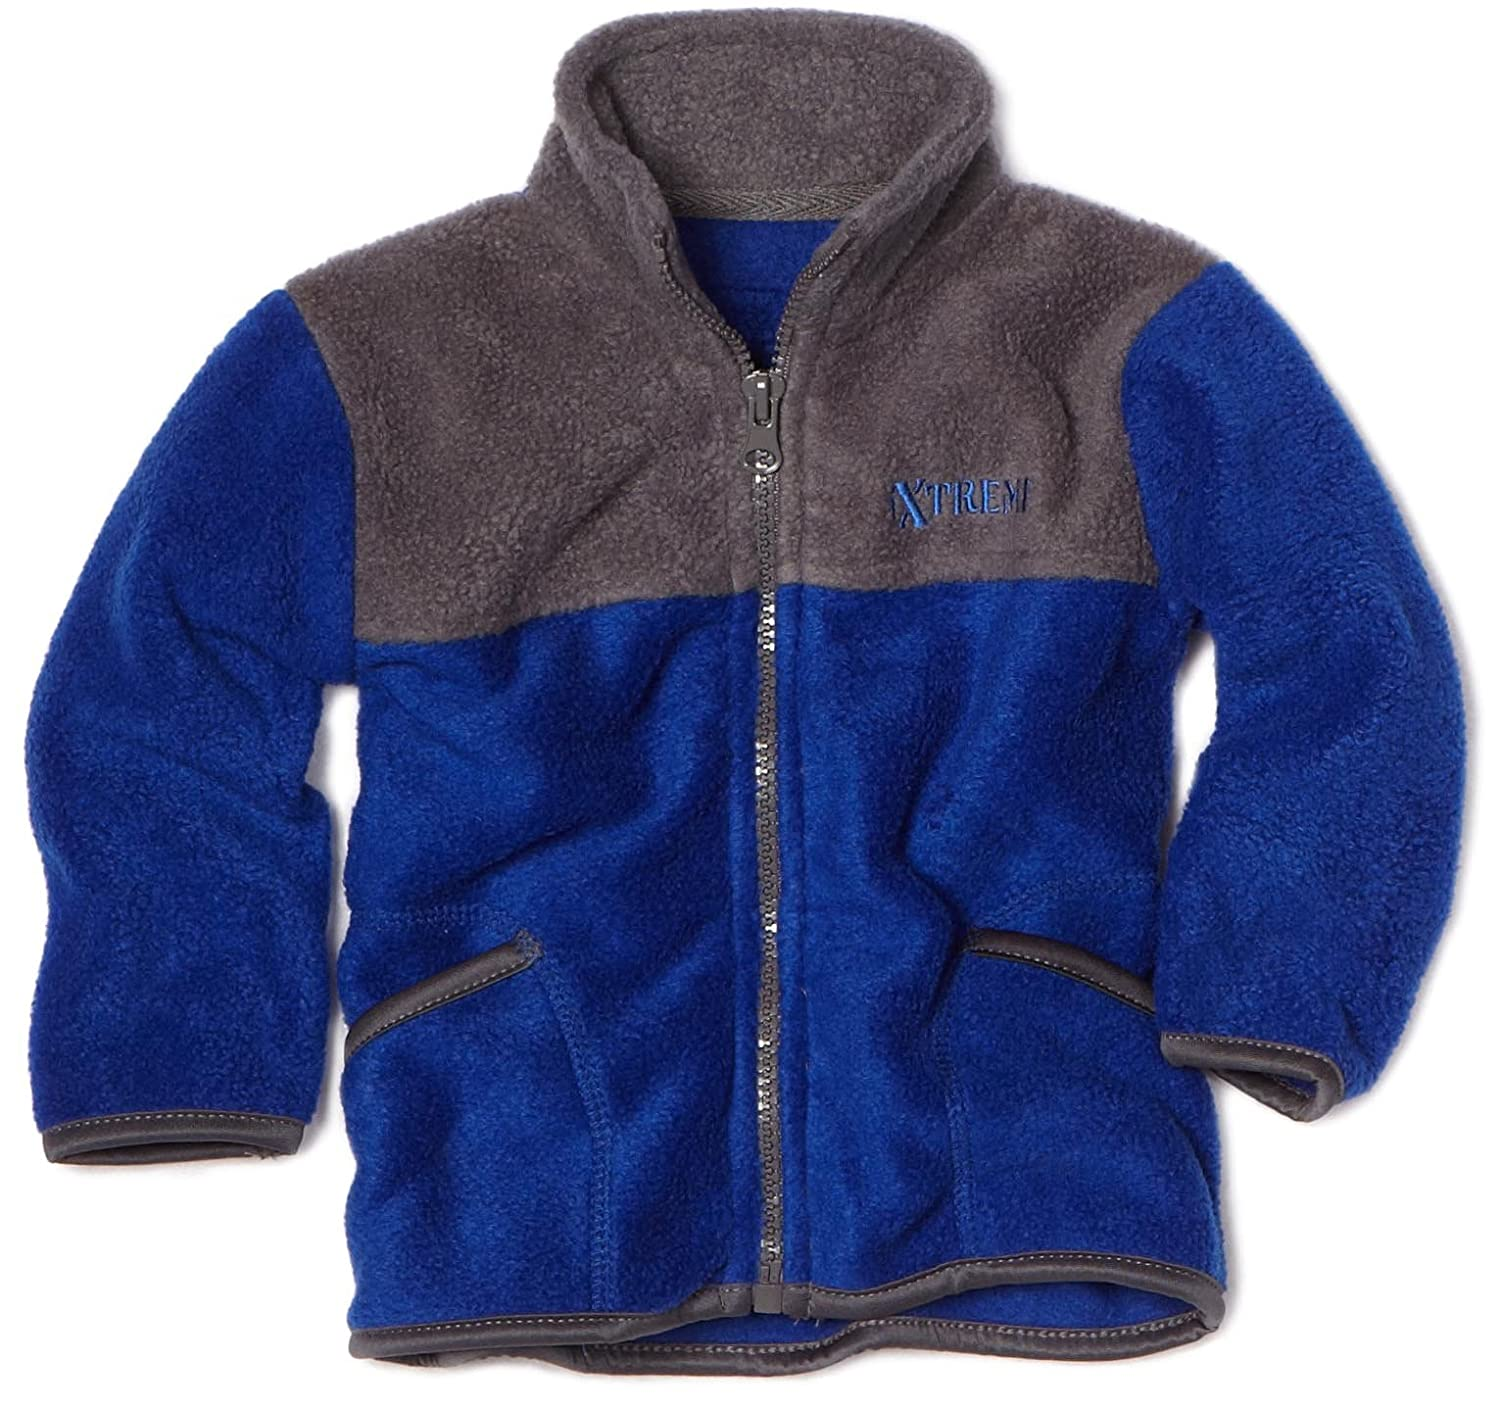 IXtreme Baby-Boys Infant Colorblock Fleece Jacket $6.13